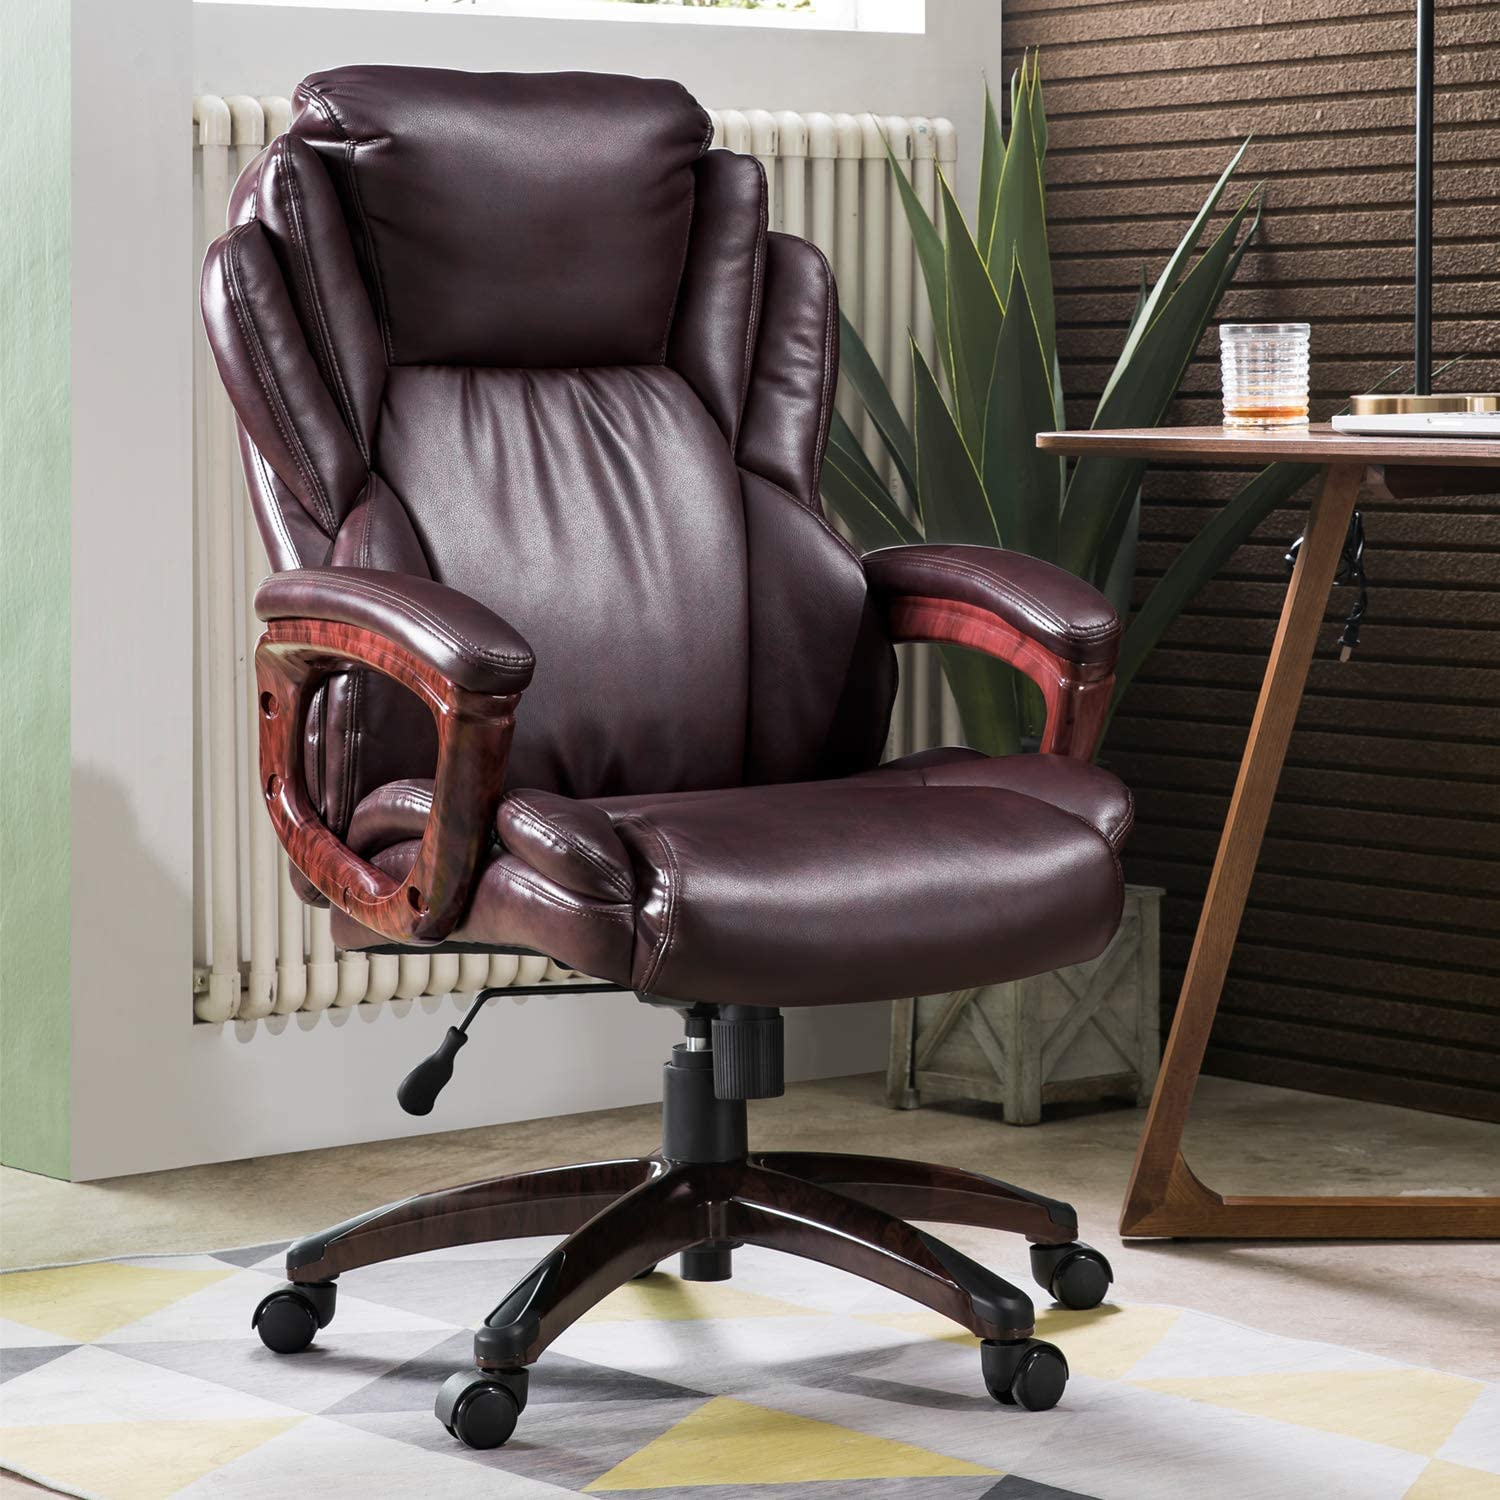 Amazon Com Ovios Executive Office Chair High Back Desk Chair Leather Computer Desk Chair For Home Office Dark Brown Kitchen Dining